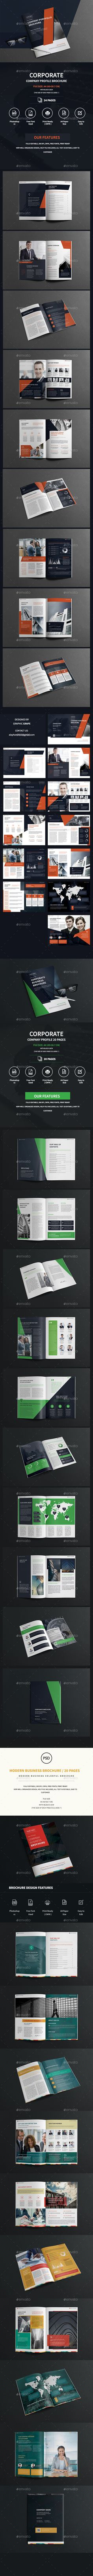 Buy Business Brochure Bundle by GraphicGrape on GraphicRiver. Business Brochure Bundle Features: 3 PSD Brochure Included File Size: cm) with bleed (The Size o. Creative Brochure, Corporate Brochure, Business Brochure, Brochure Design, Branding Design, Graphic Design Templates, Print Templates, Company Profile Design, Travel Brochure Template